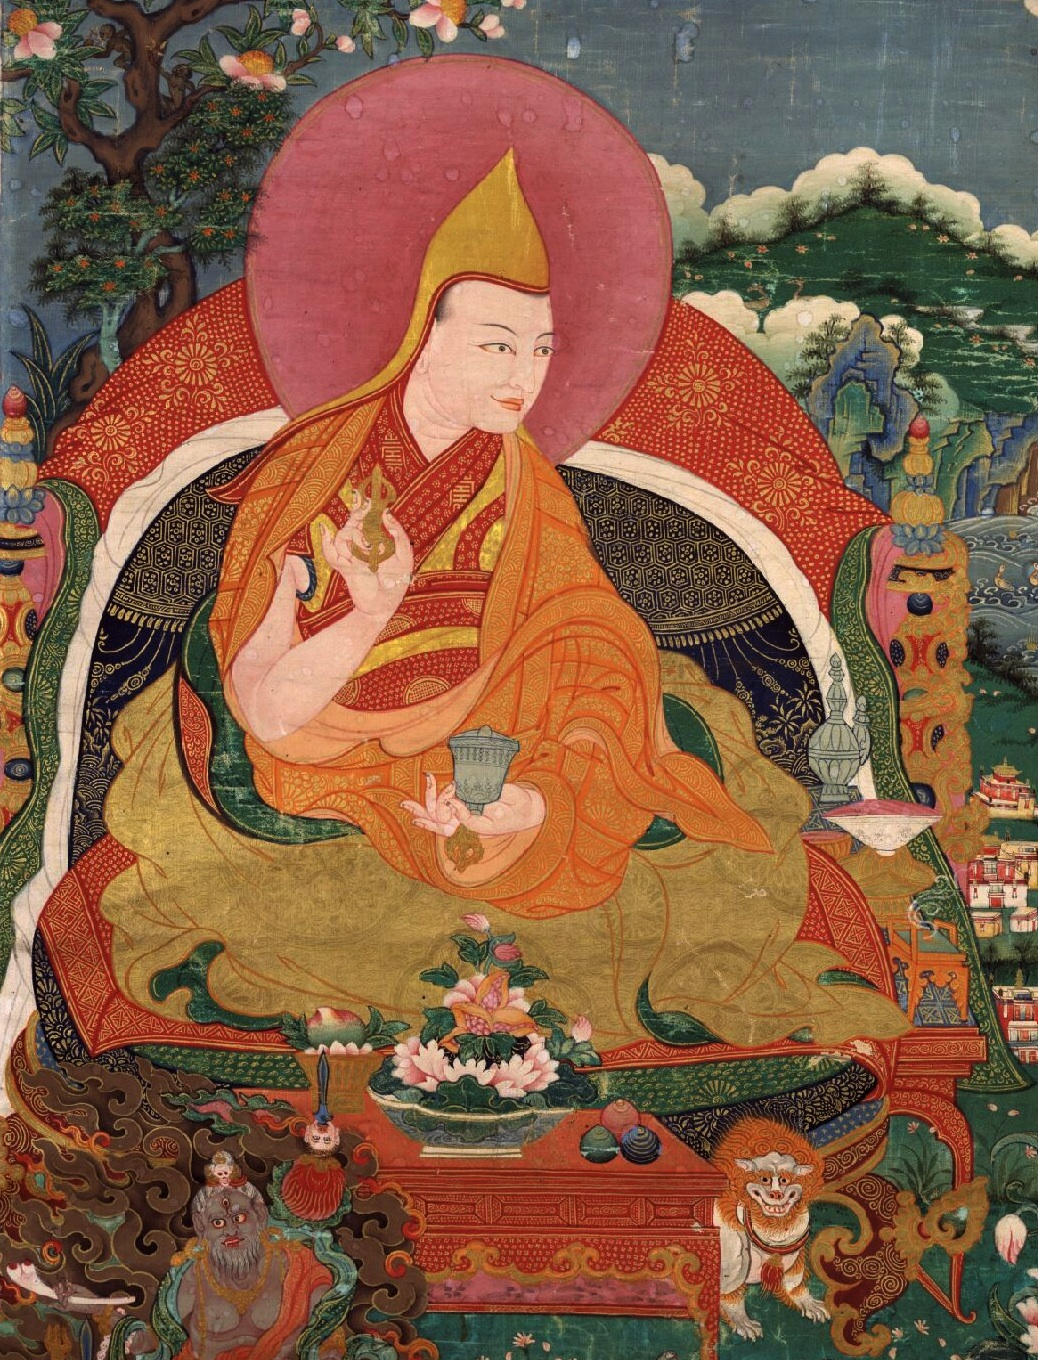 the fifth dalai lama and his reunification of tibet by samten g sonamgyatso jpg